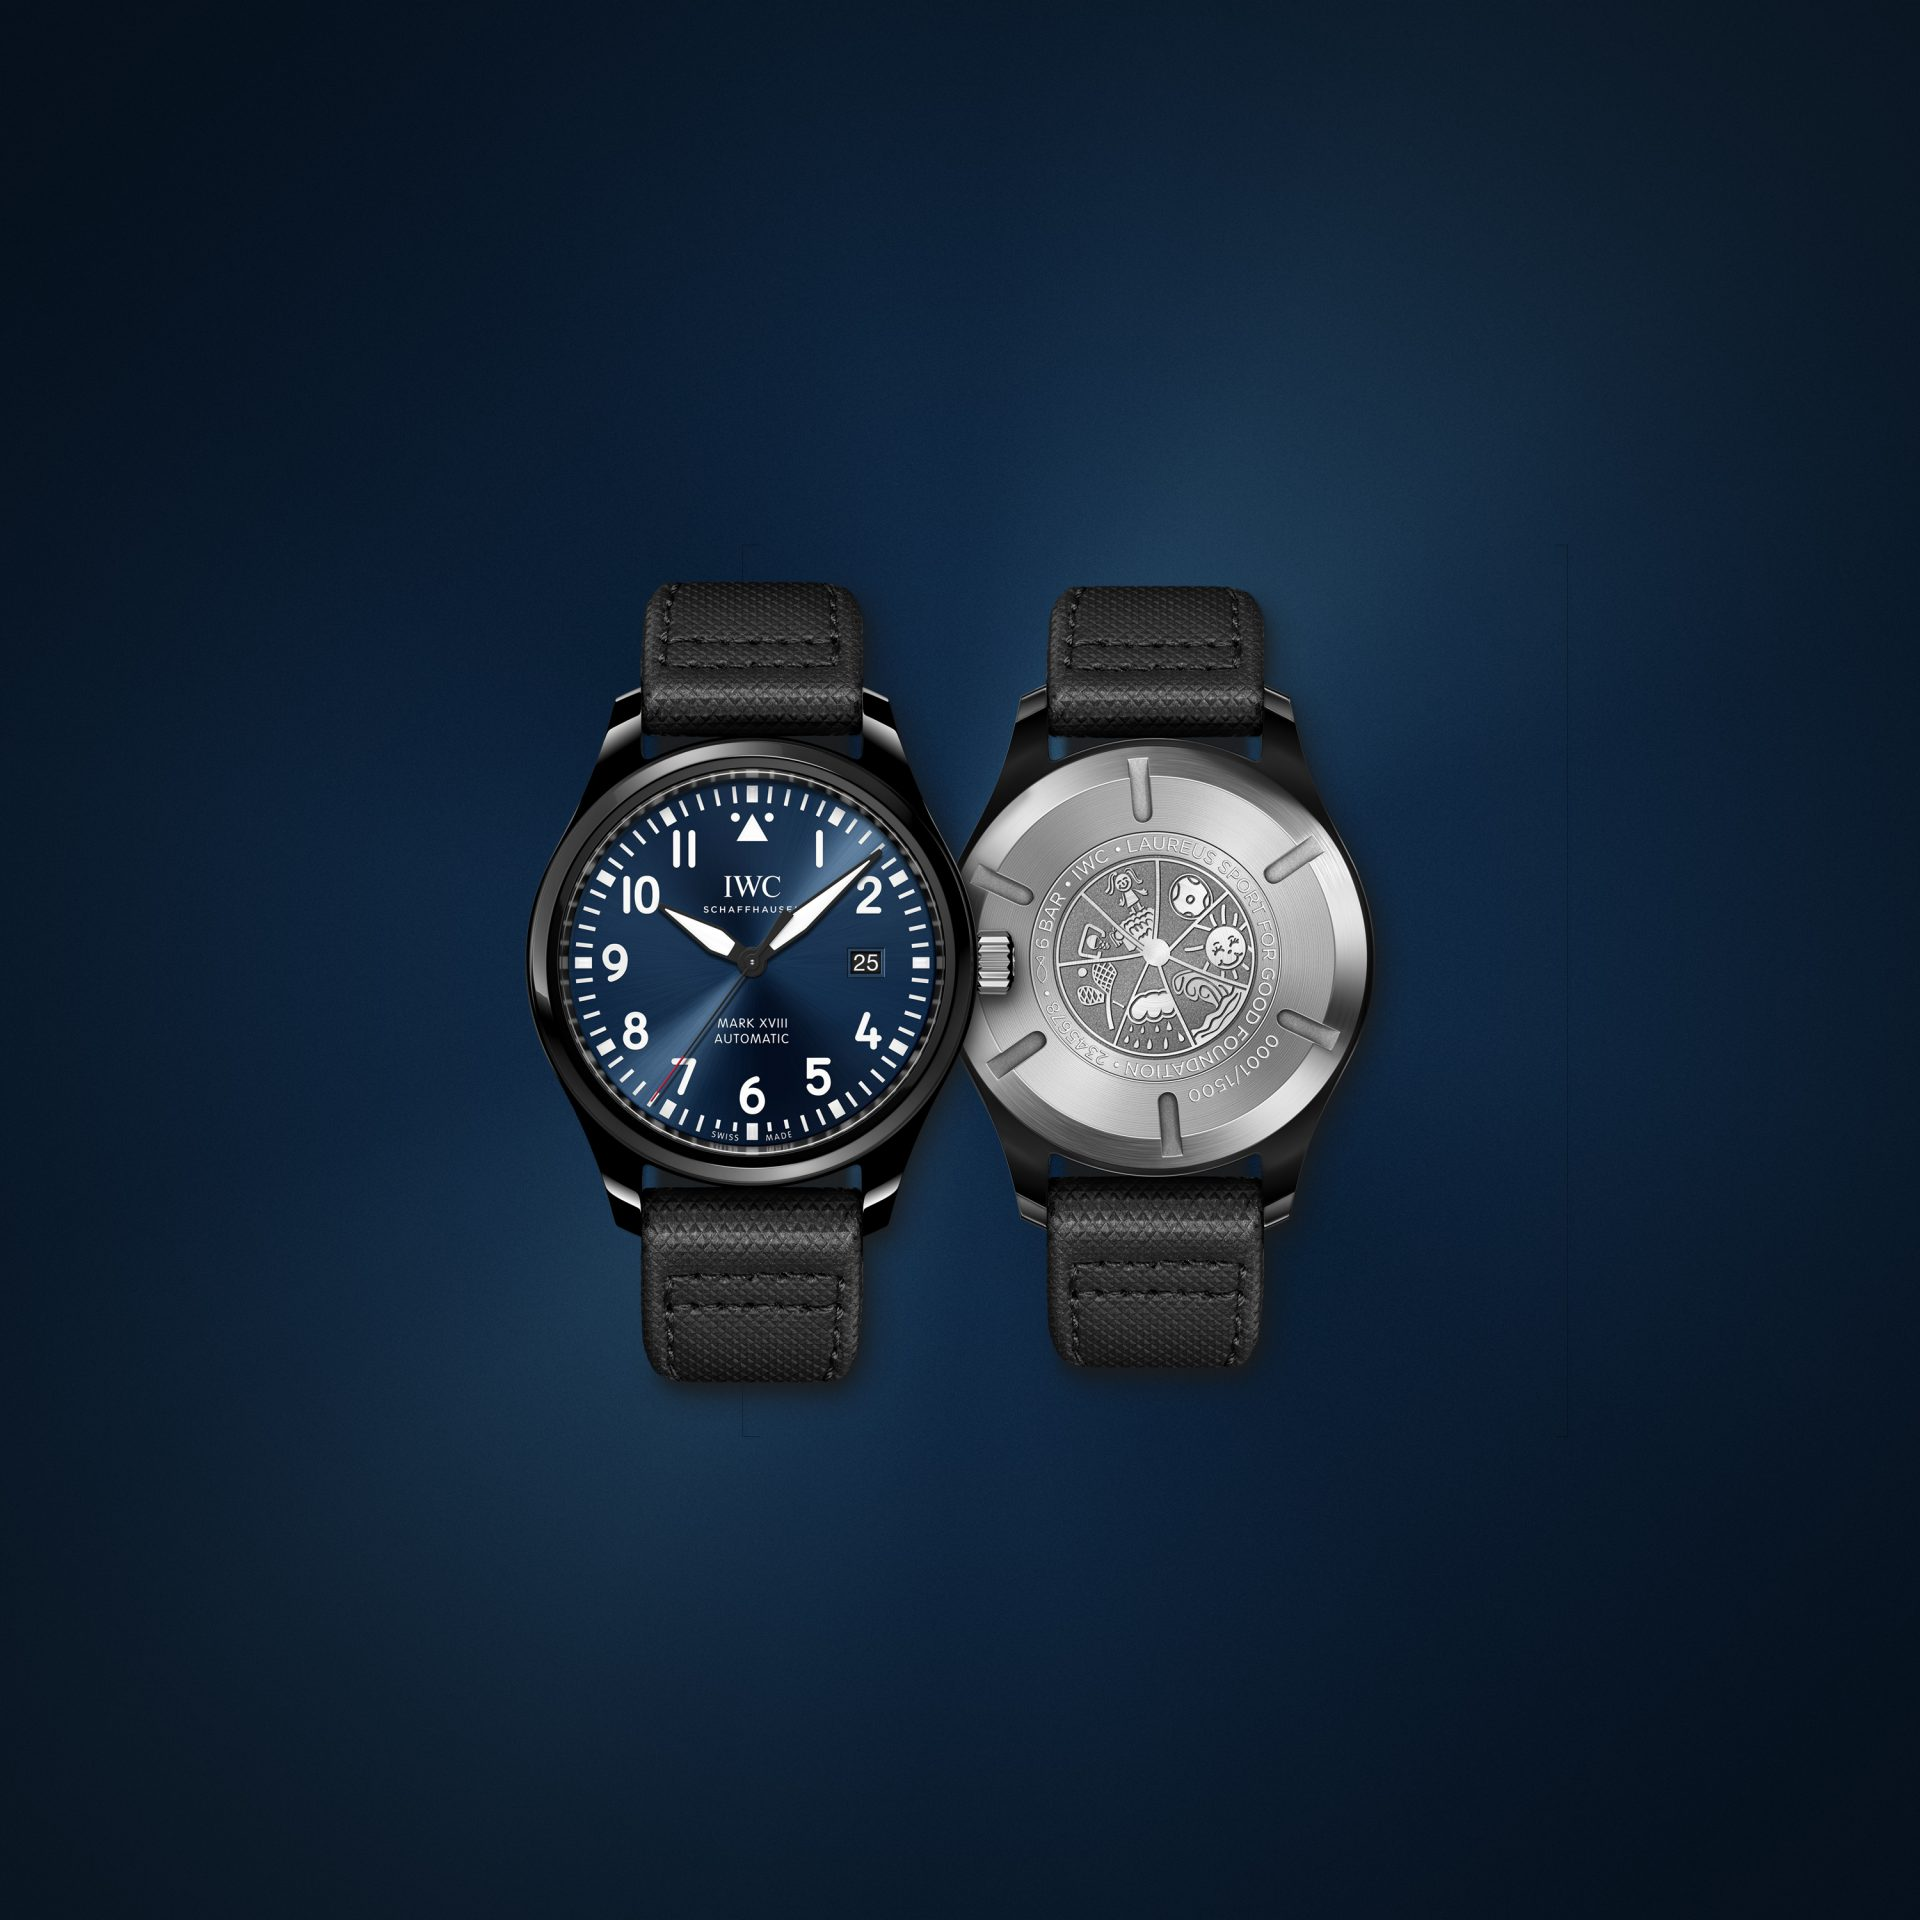 MONTRE D'AVIATEUR MARK XVIII EDITION «LAUREUS SPORT FOR GOOD FOUNDATION»